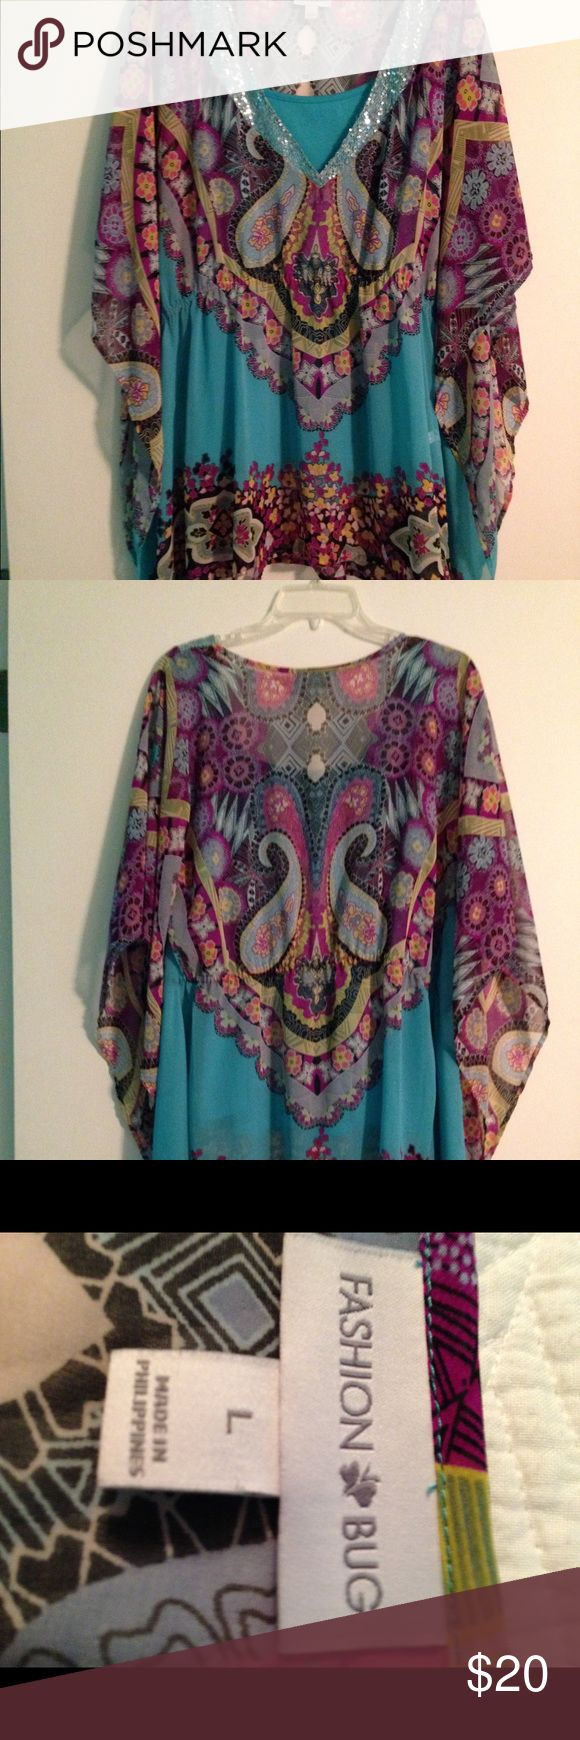 Fashion Bug butterfly top Fashion Bug butterfly top with attached tank top. Size L. Bust 40-42, length 32 100% polyester.  Threads holding tank top in place could easily be snipped & use the top for a swimsuit cover up.  Mint condition. Fashion Bug Tops Tunics